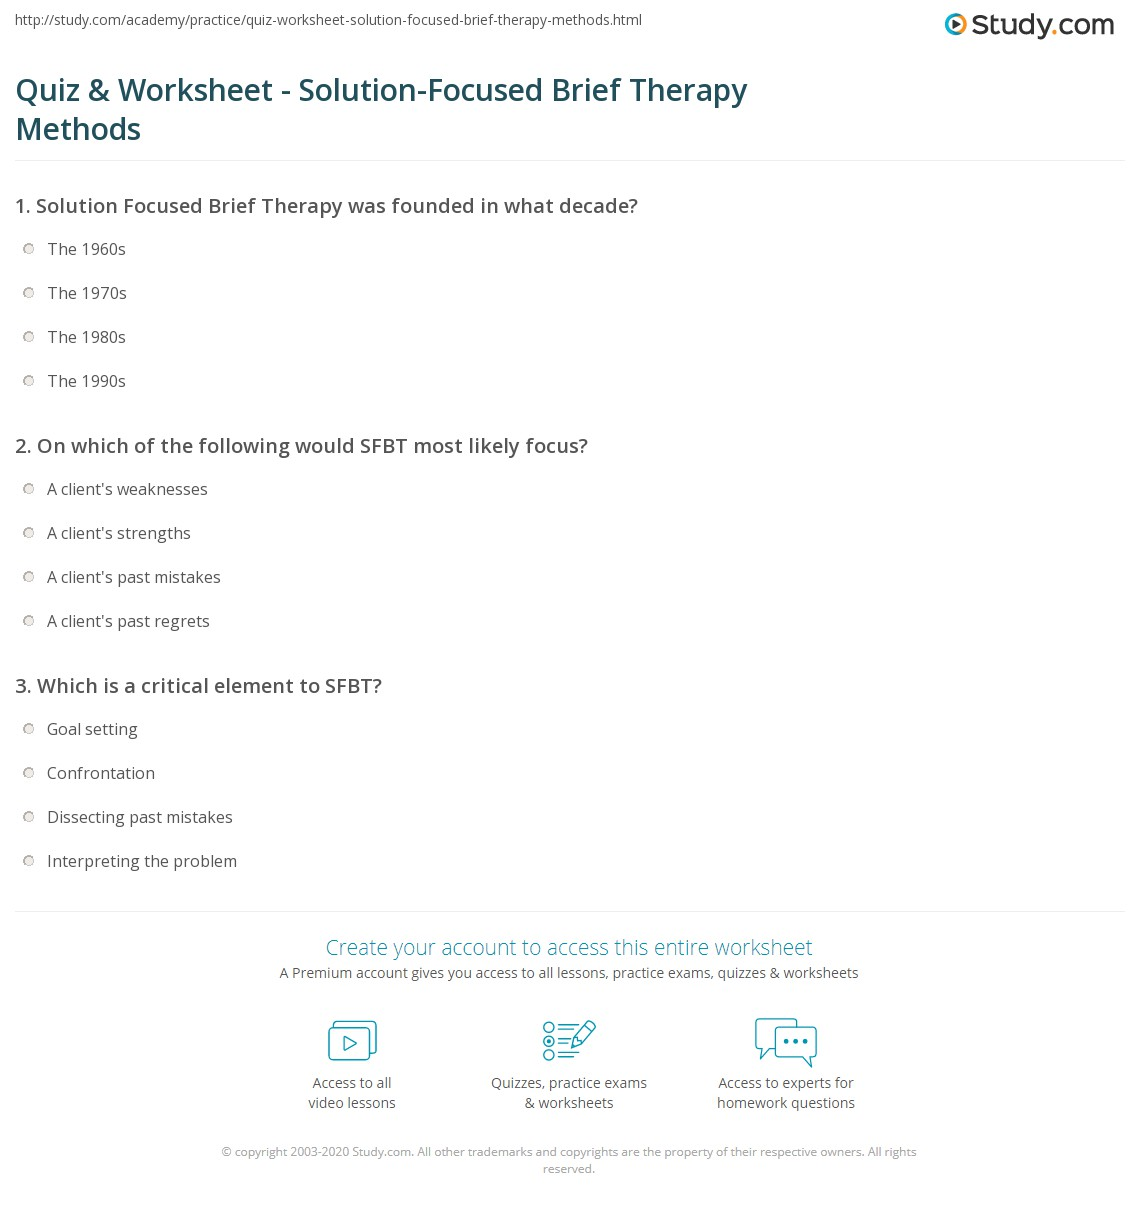 Worksheet Solution Focused Therapy Worksheets quiz worksheet solution focused brief therapy methods study com print what is techniques training worksheet